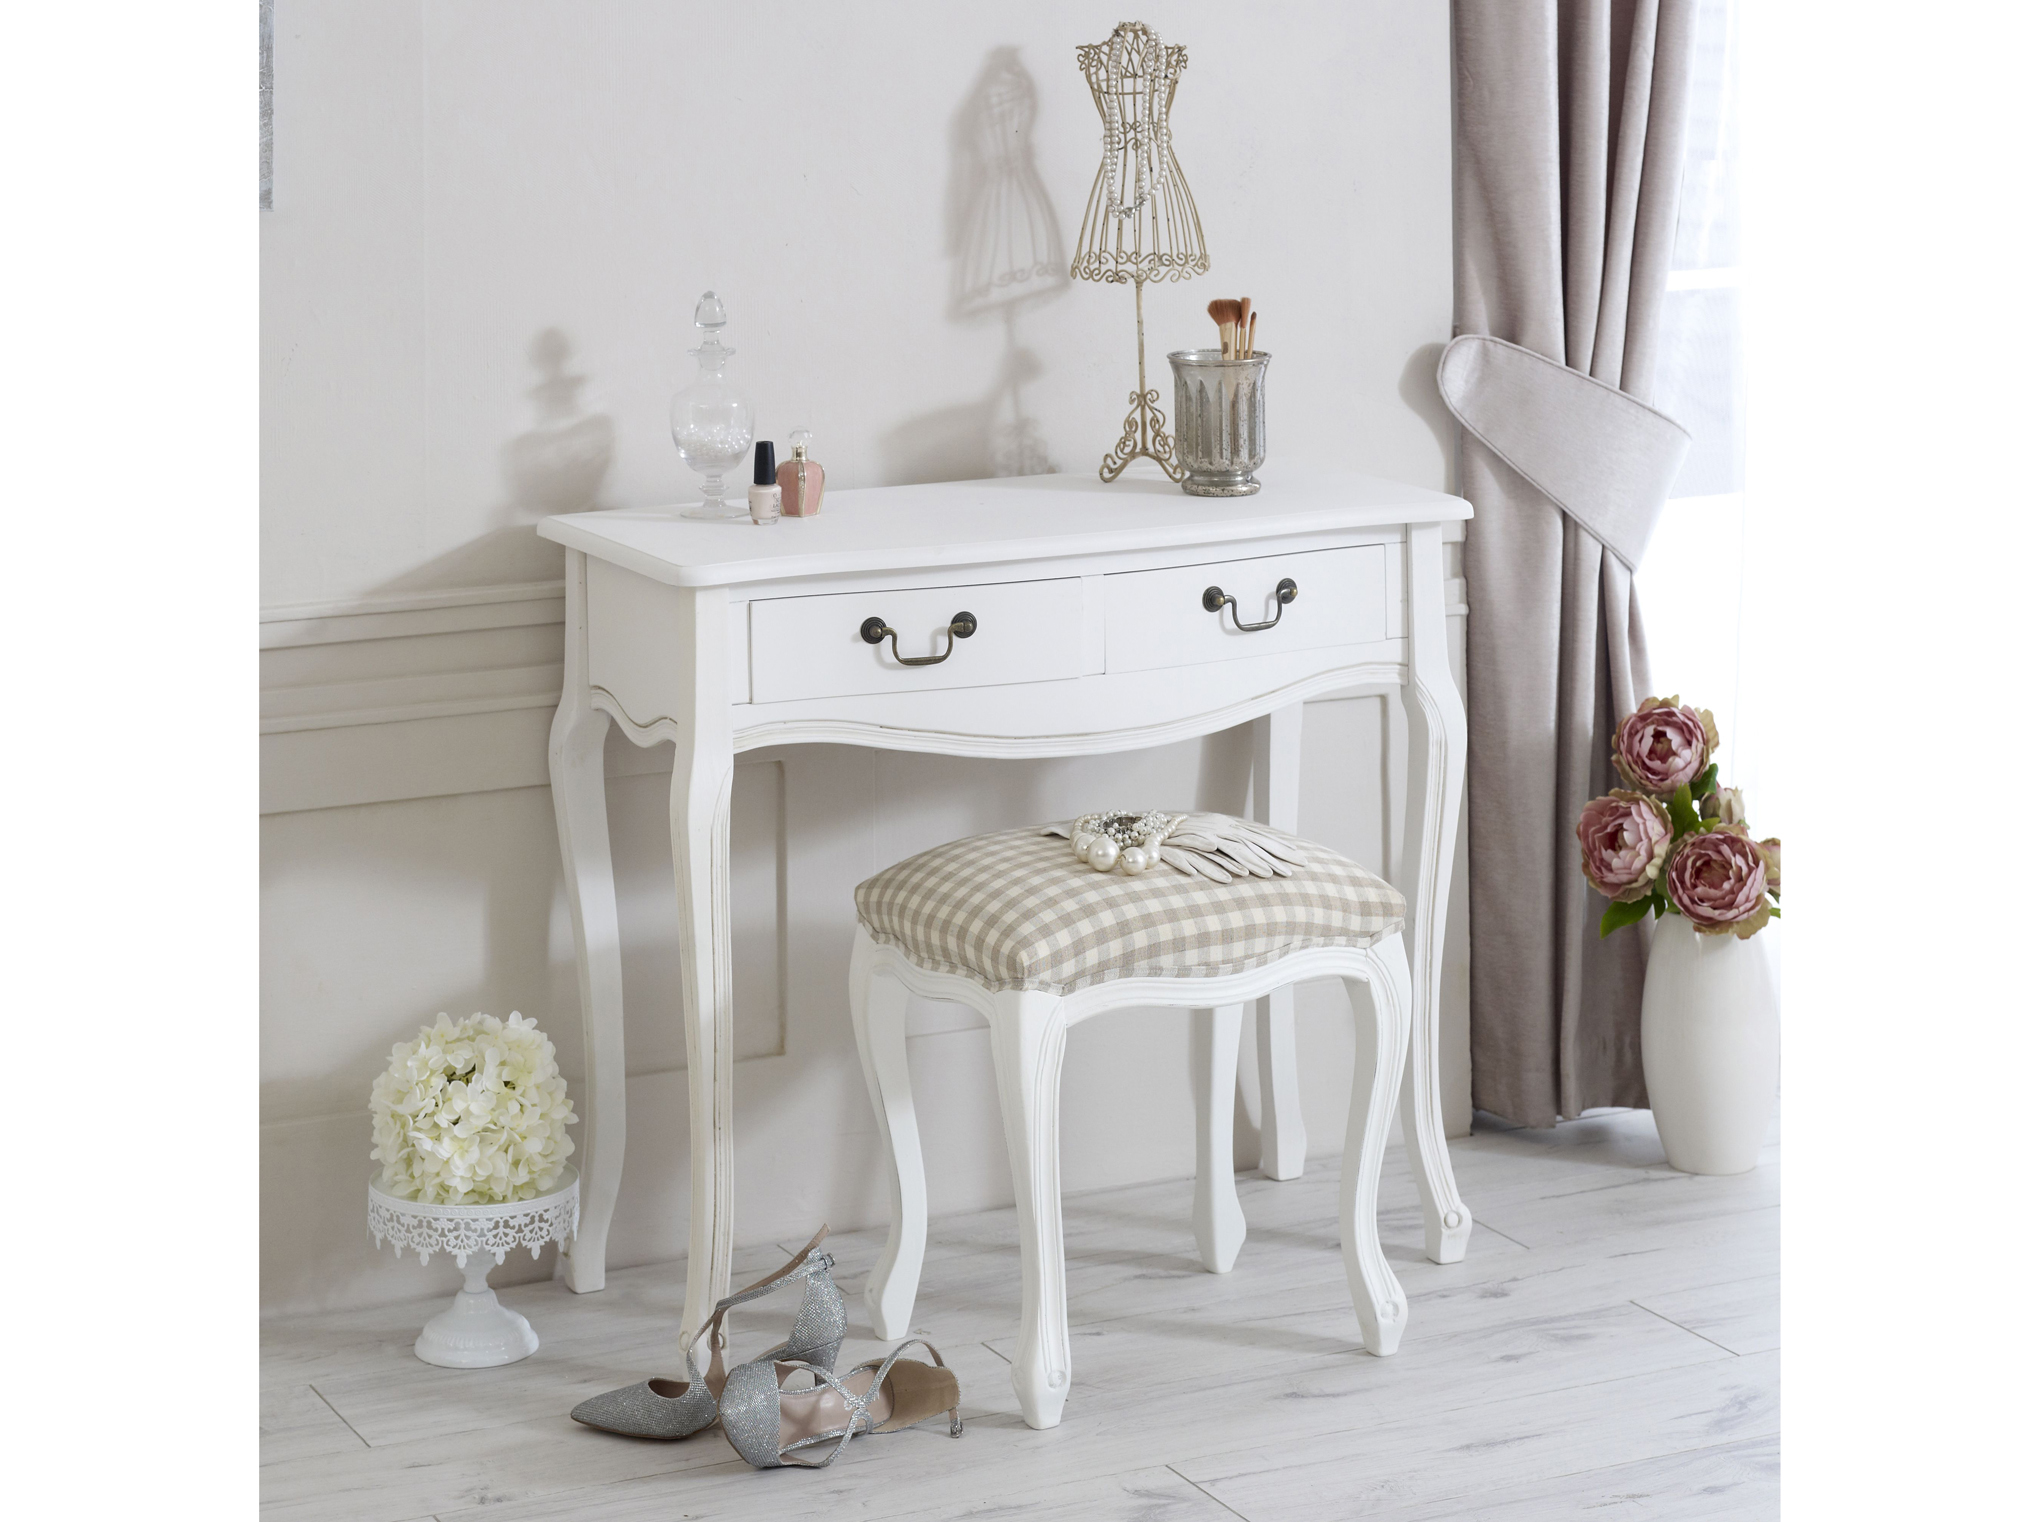 Classic White Range Dressing Table with Stool, £154.95, Melody Maison